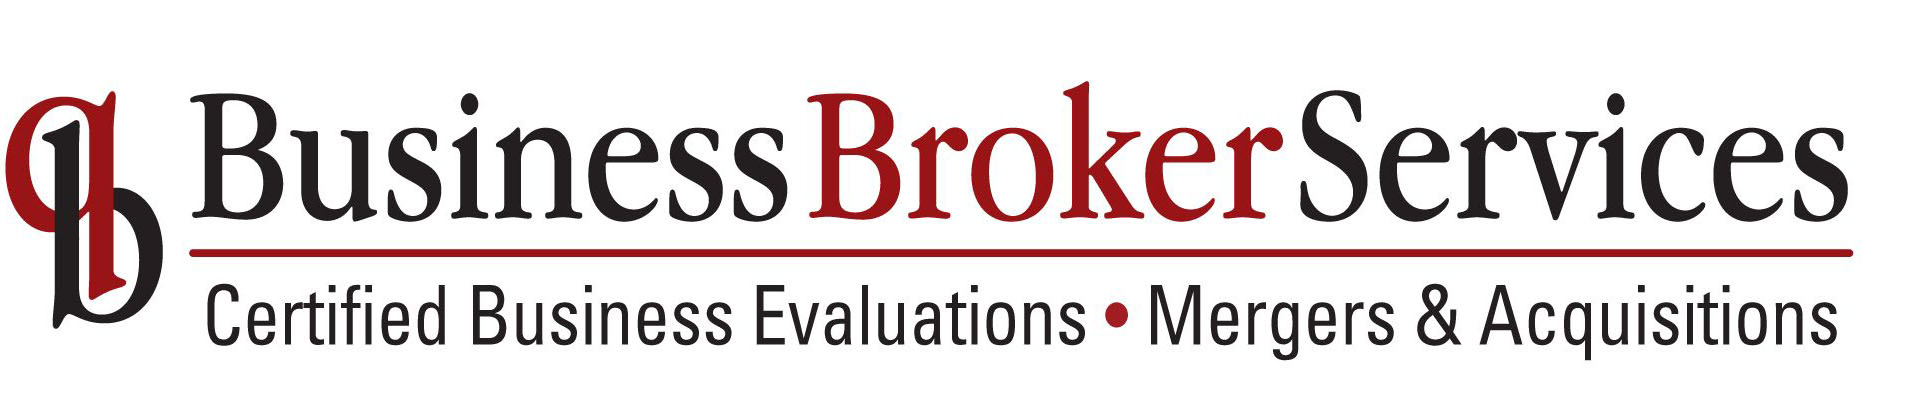 Business broker evaluation services company specialist